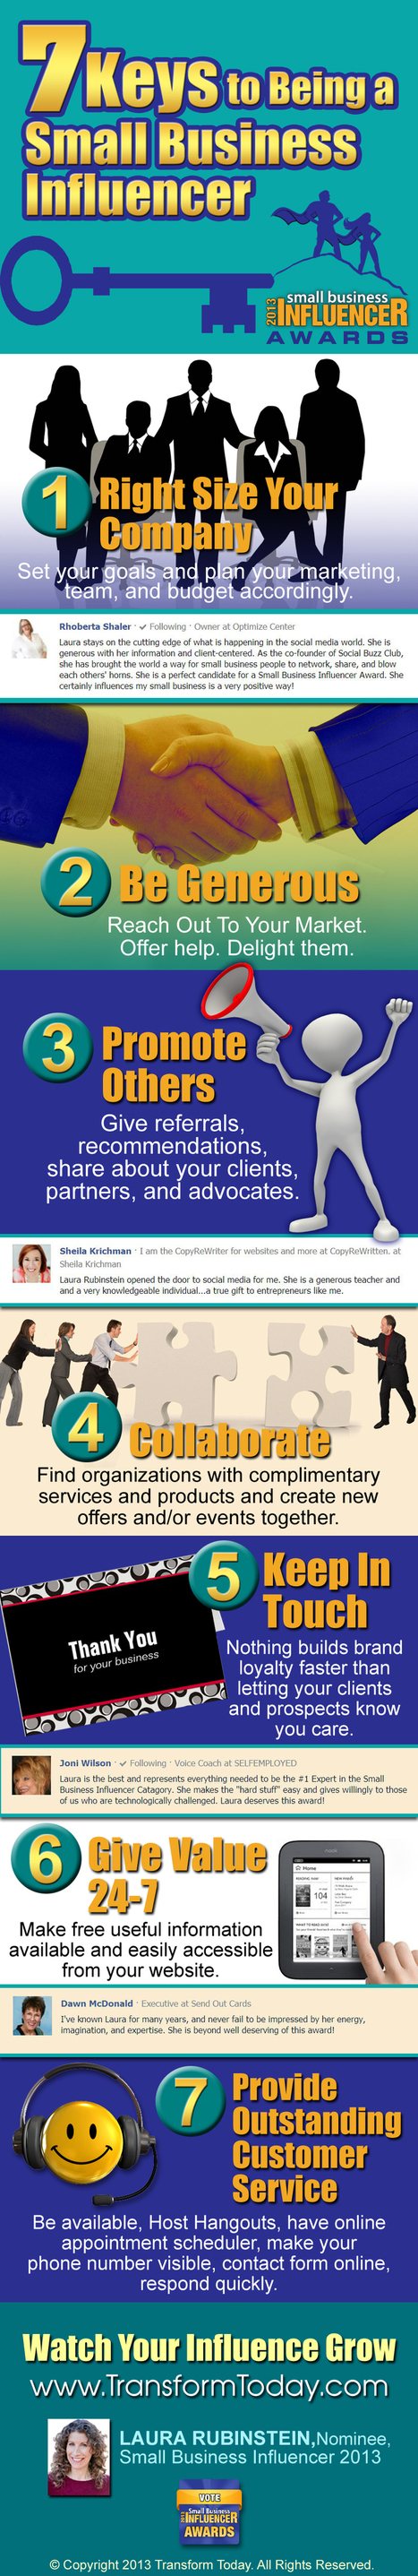 7 Keys To Being A Small Business Influencer [Infographic] - Transform Today | Business Resources & Tips | Scoop.it